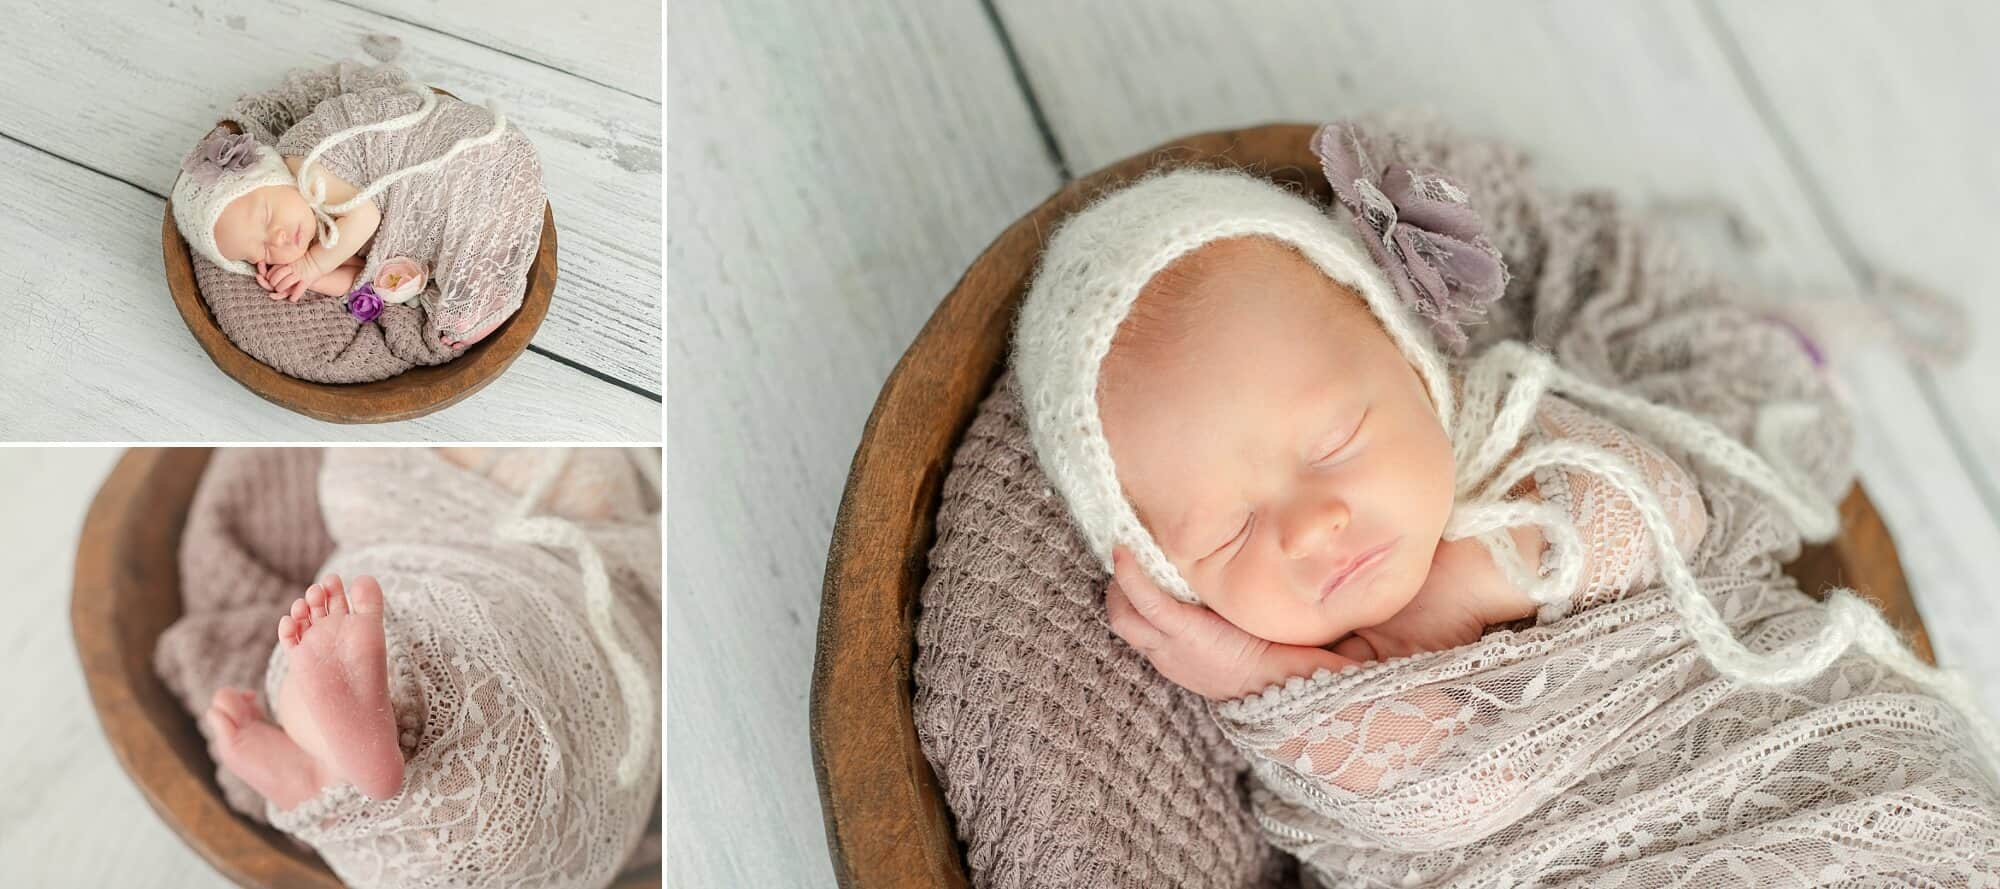 mansfield ohio newborn photographer